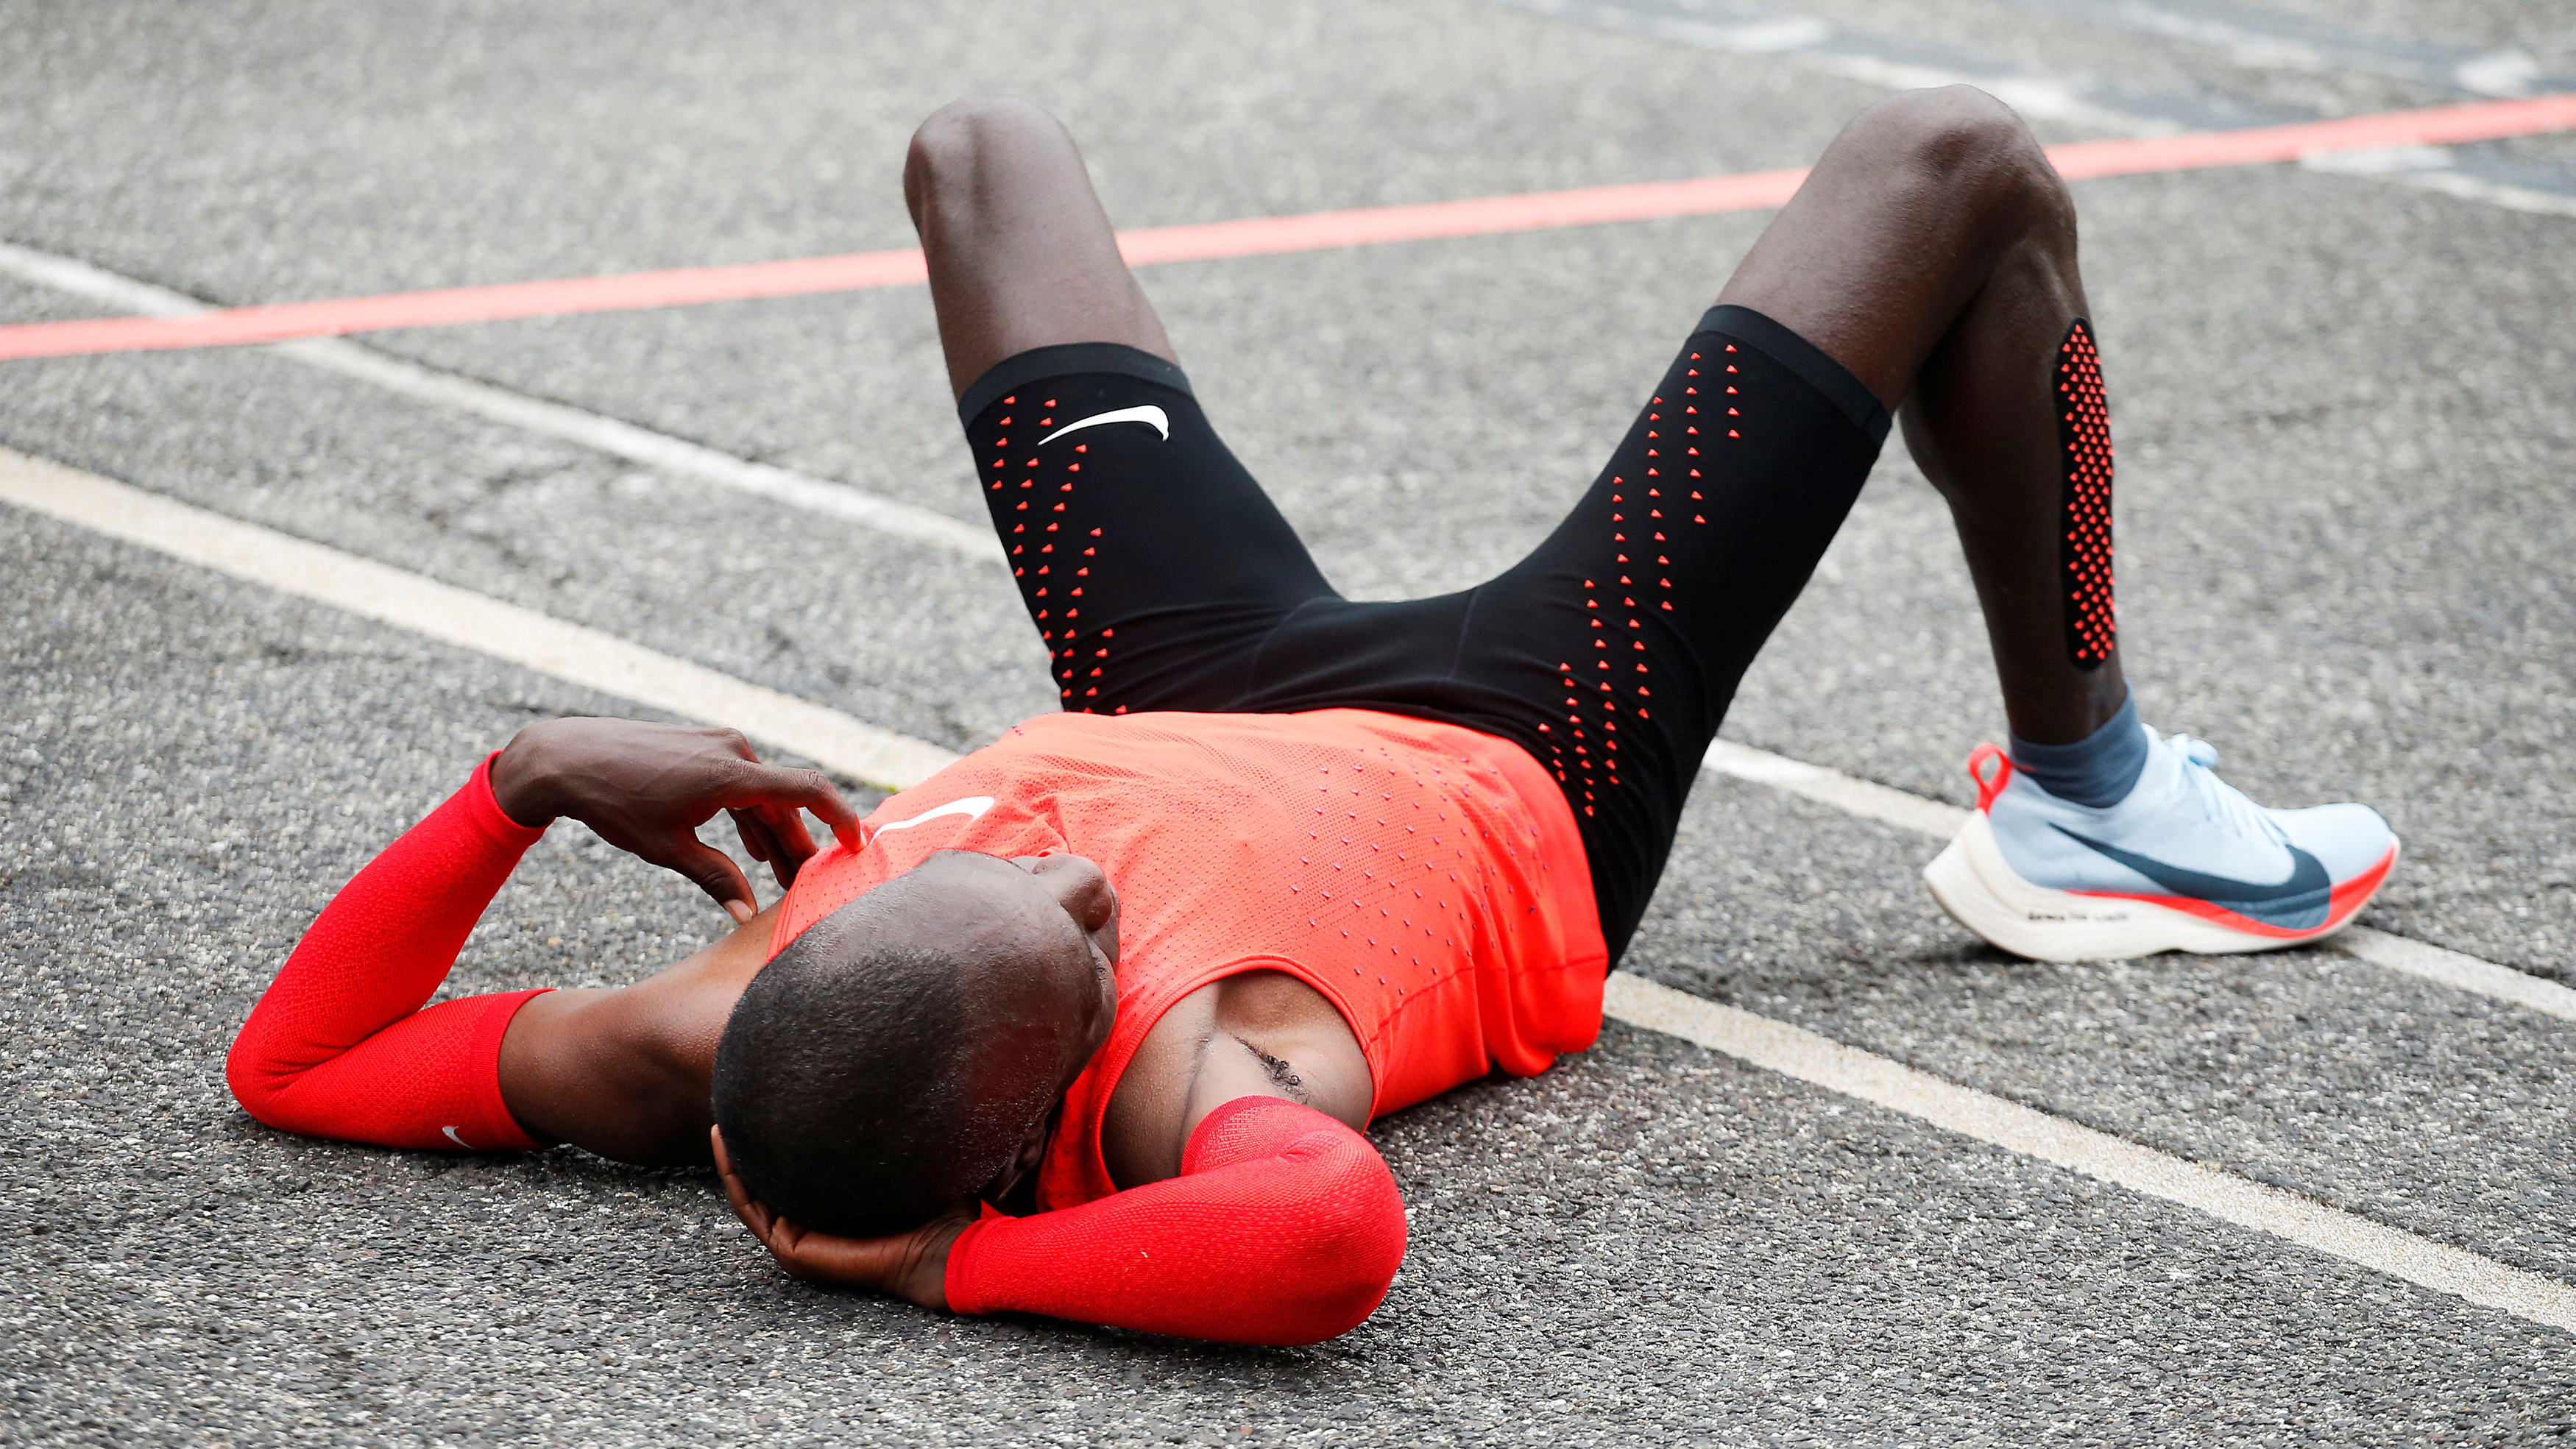 Kenyan Eliud Kipchoge reacts after crossing the finish line during an attempt to break the two-hour marathon barrier at the Monza circuit in Italy, May 6, 2017. REUTERS/Alessandro Garofalo - RTS15DUU